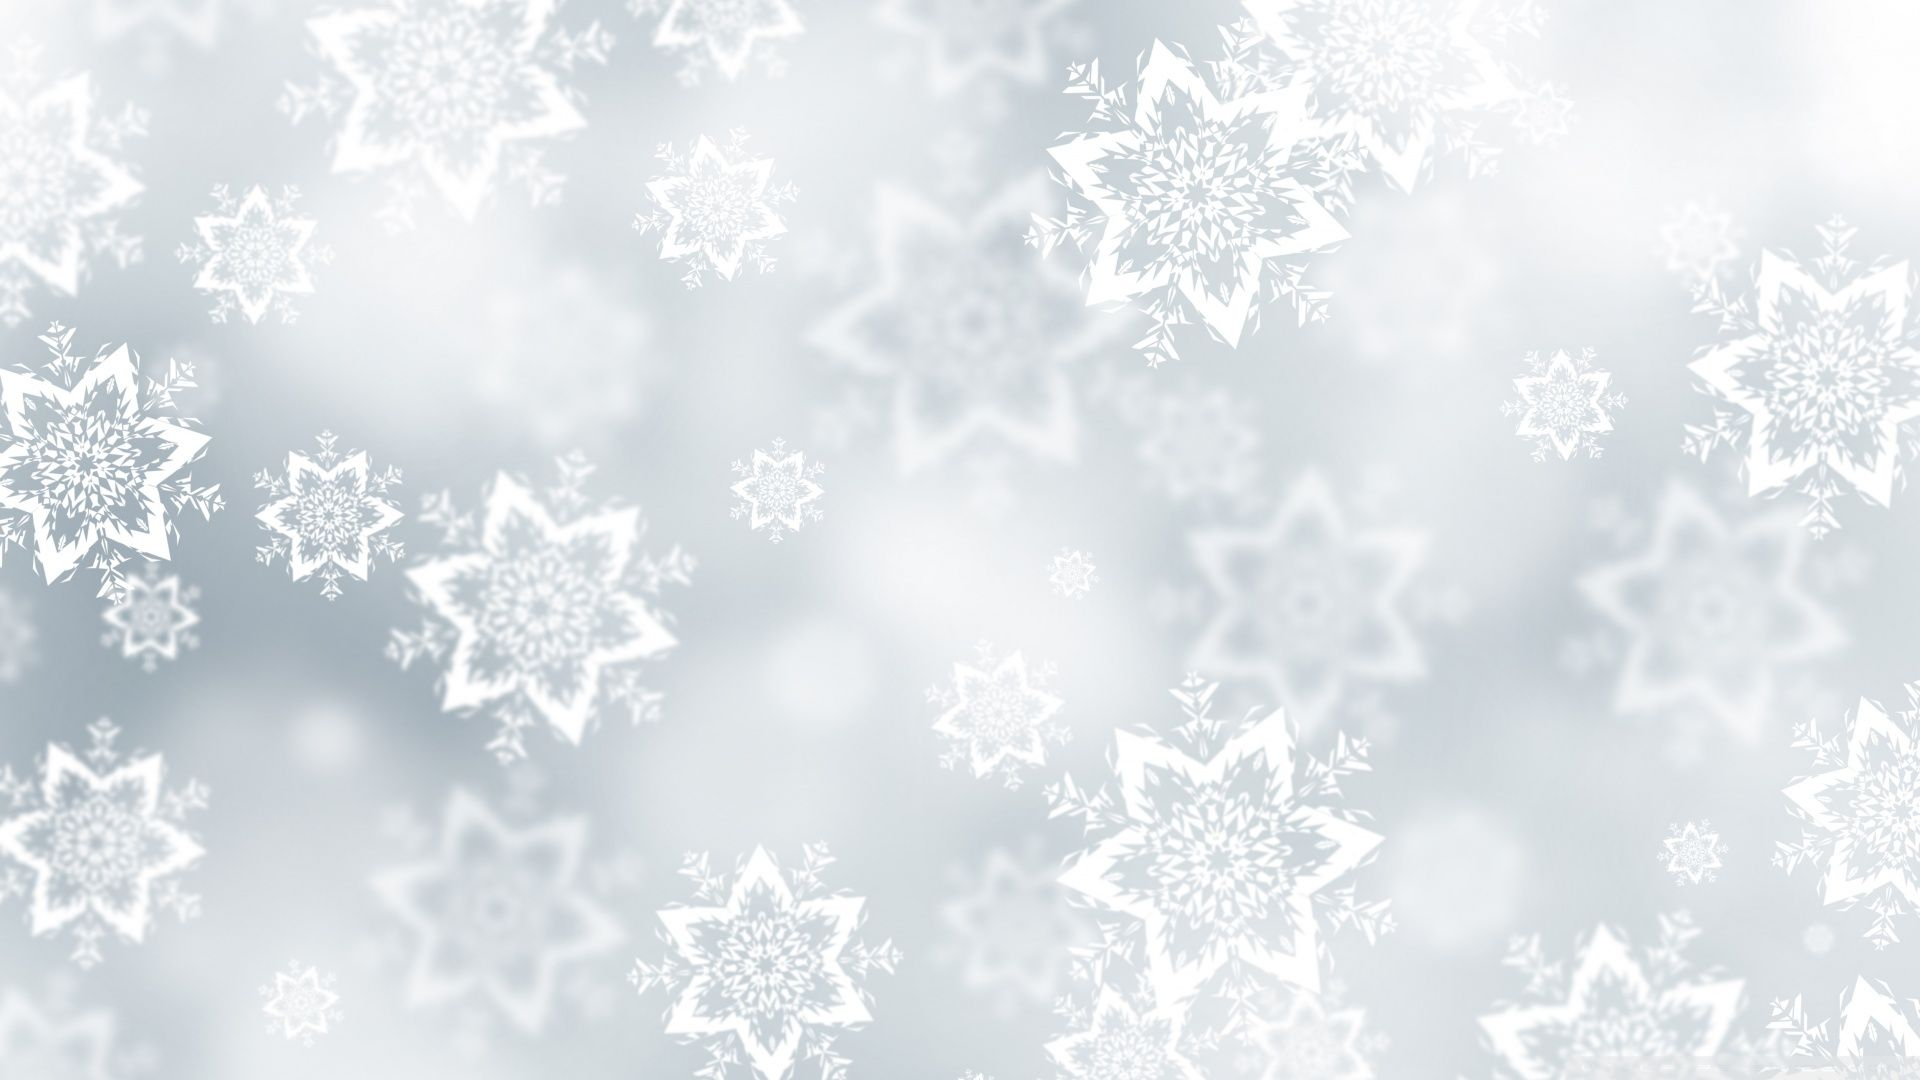 White Snowflake Hd Wallpaper Id 7196 Download Page Snowflake Wallpaper Snowflake Background Christmas Snow Background